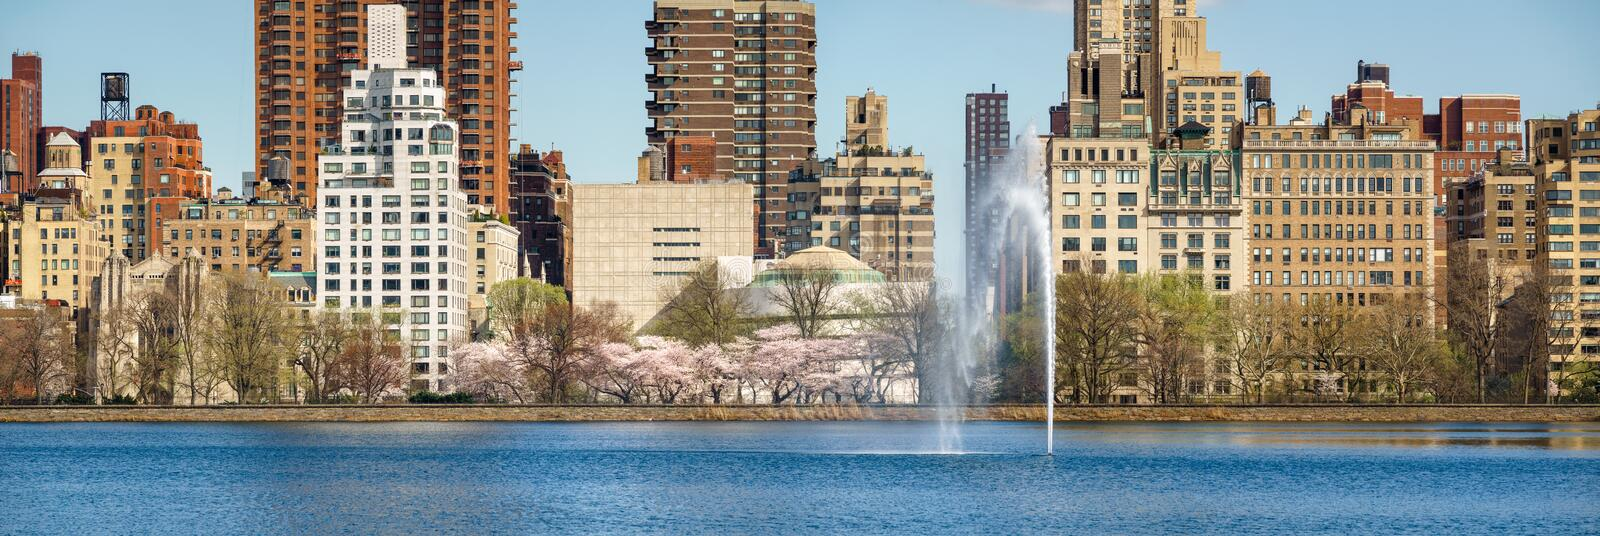 Central Park and Upper East Side in Spring, New York royalty free stock images